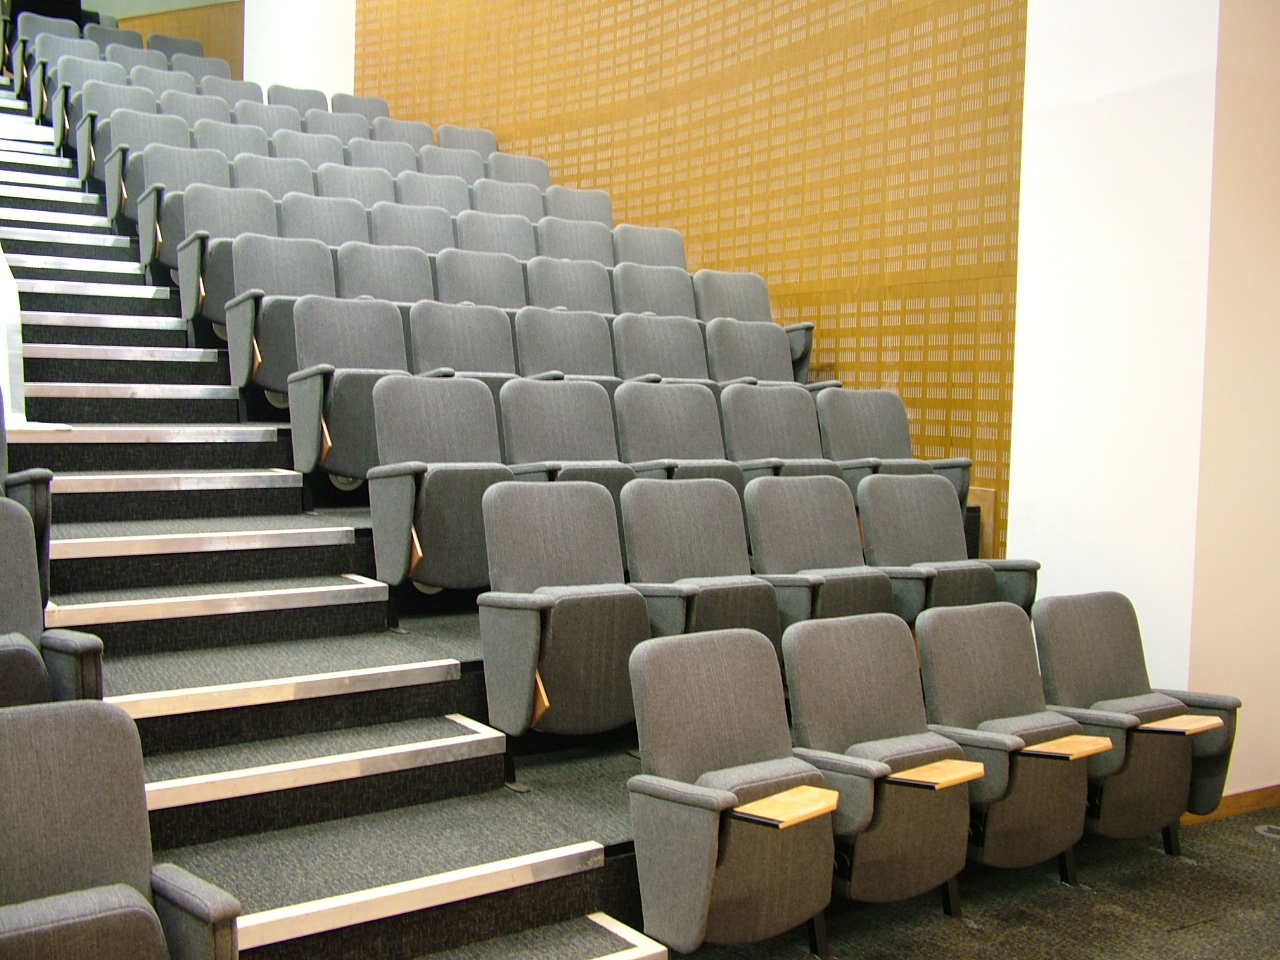 Lecture chairs with fold-away writing tablets in large university lecture theatre